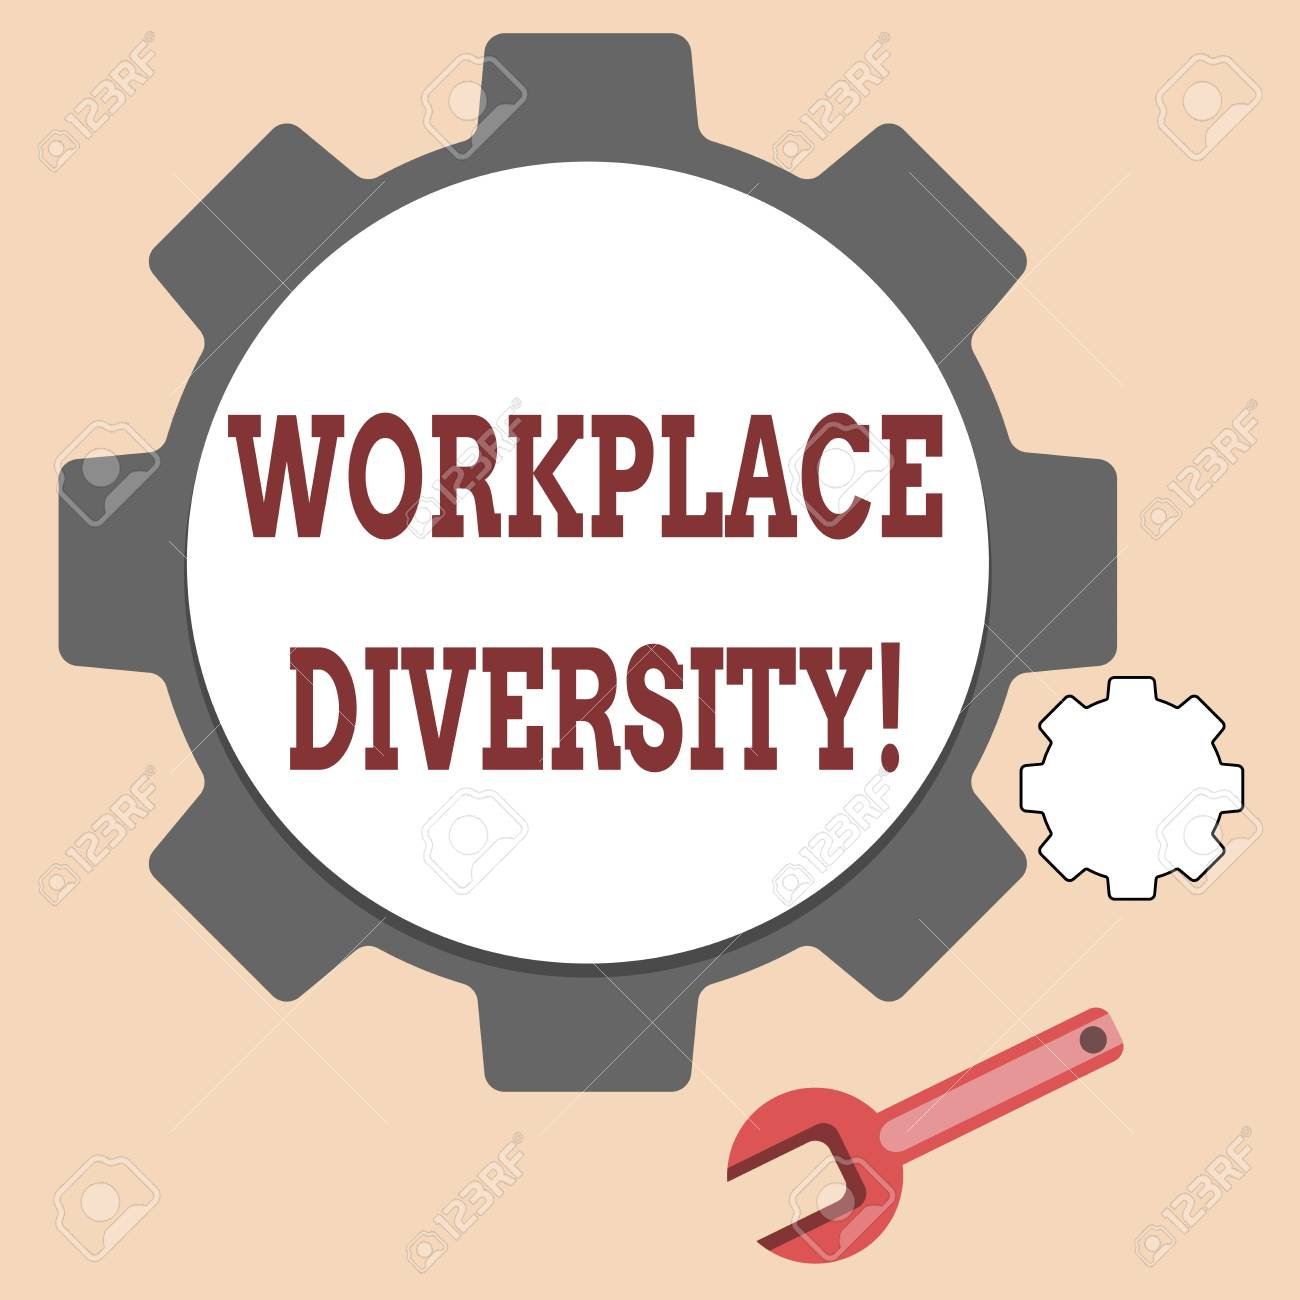 Diversity Meaning Workplace >> Handwriting Text Writing Workplace Diversity Concept Meaning